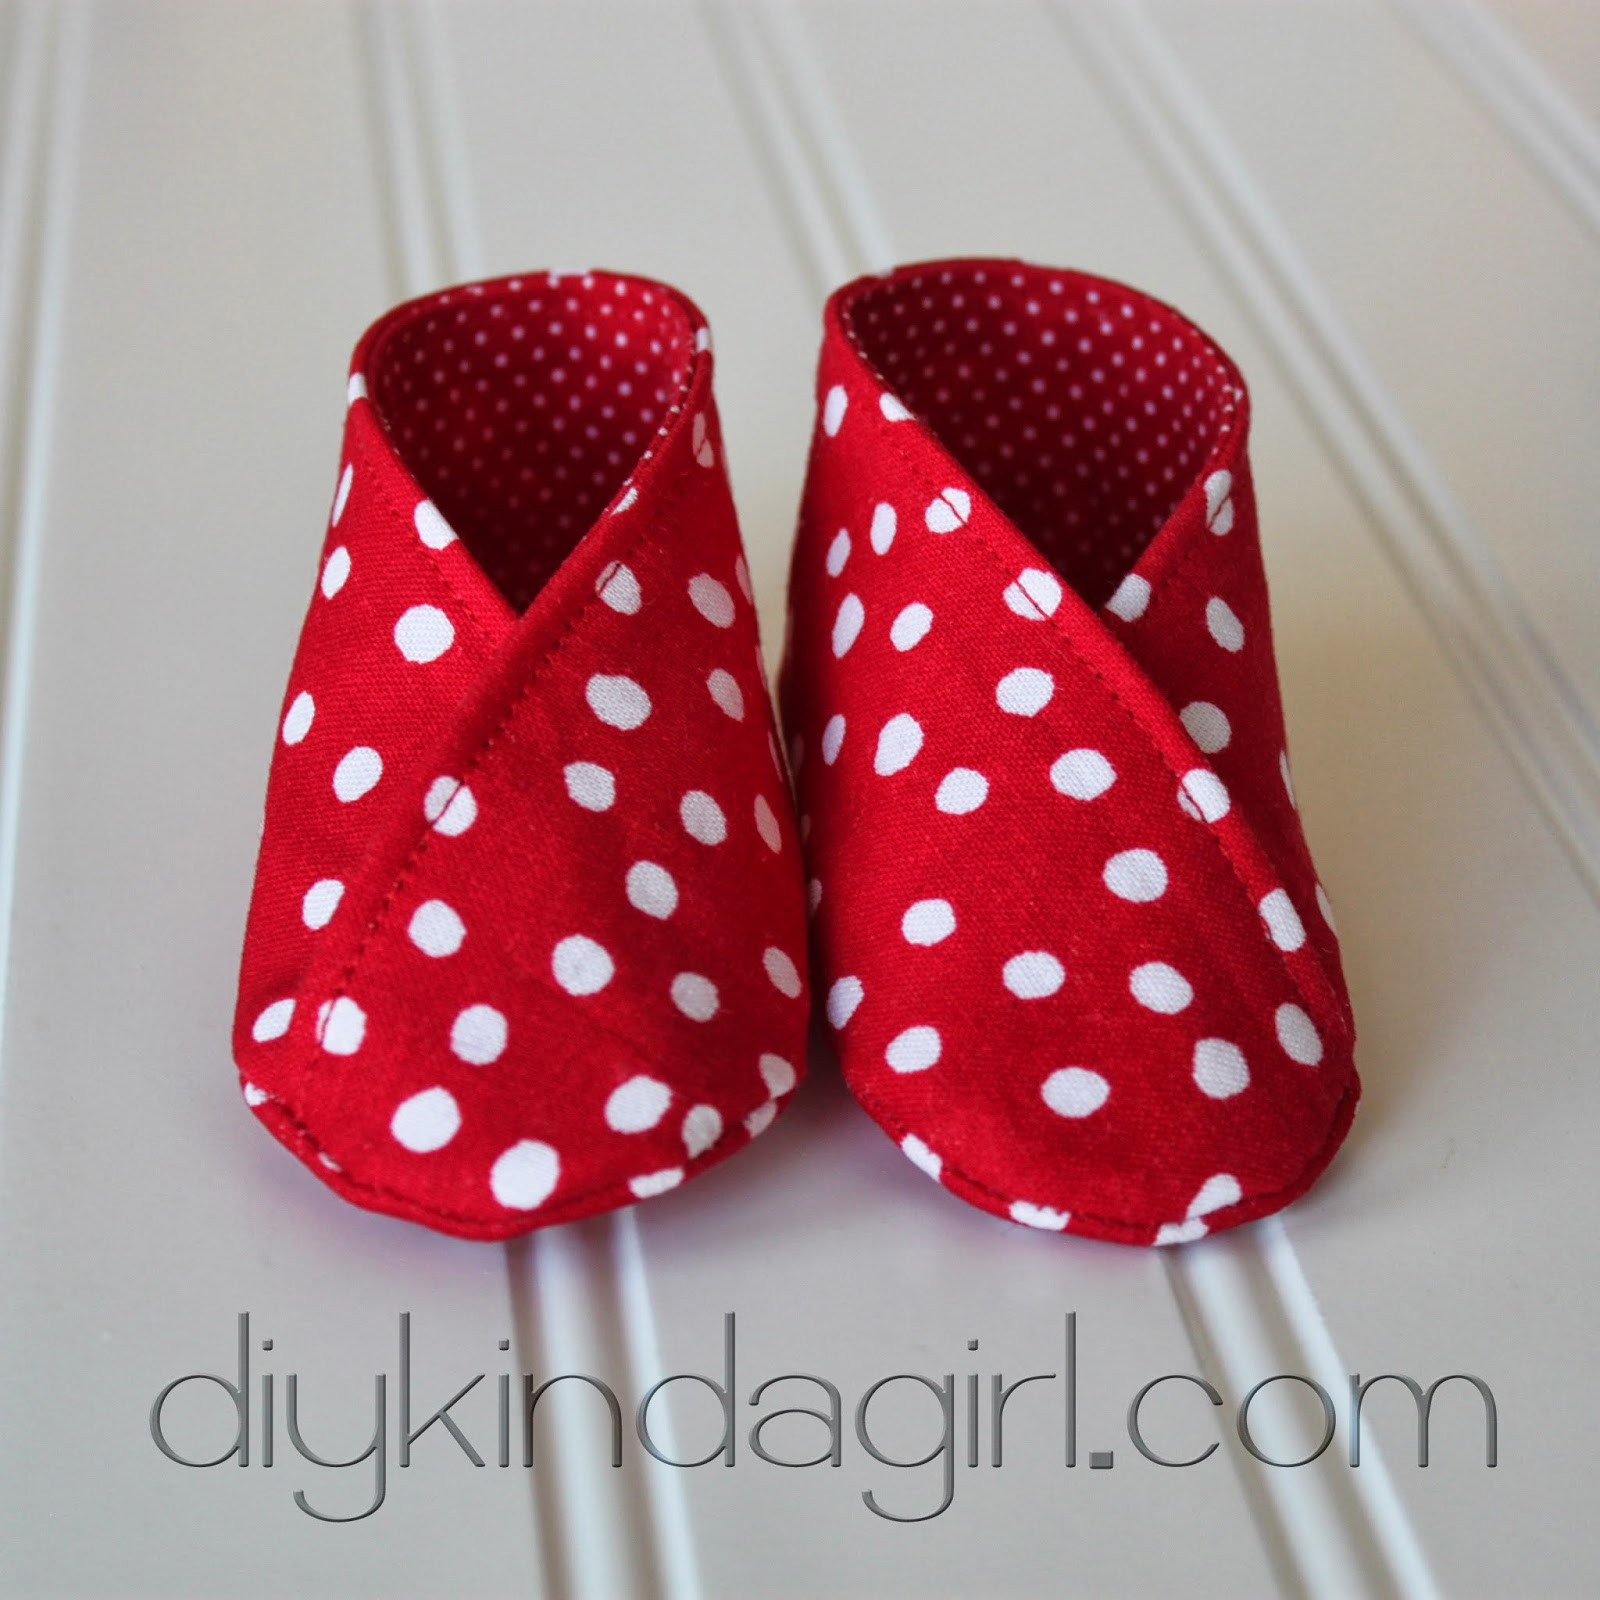 Best ideas about DIY Baby Shoes . Save or Pin DIY kinda girl Latest Baby Shoes Now.